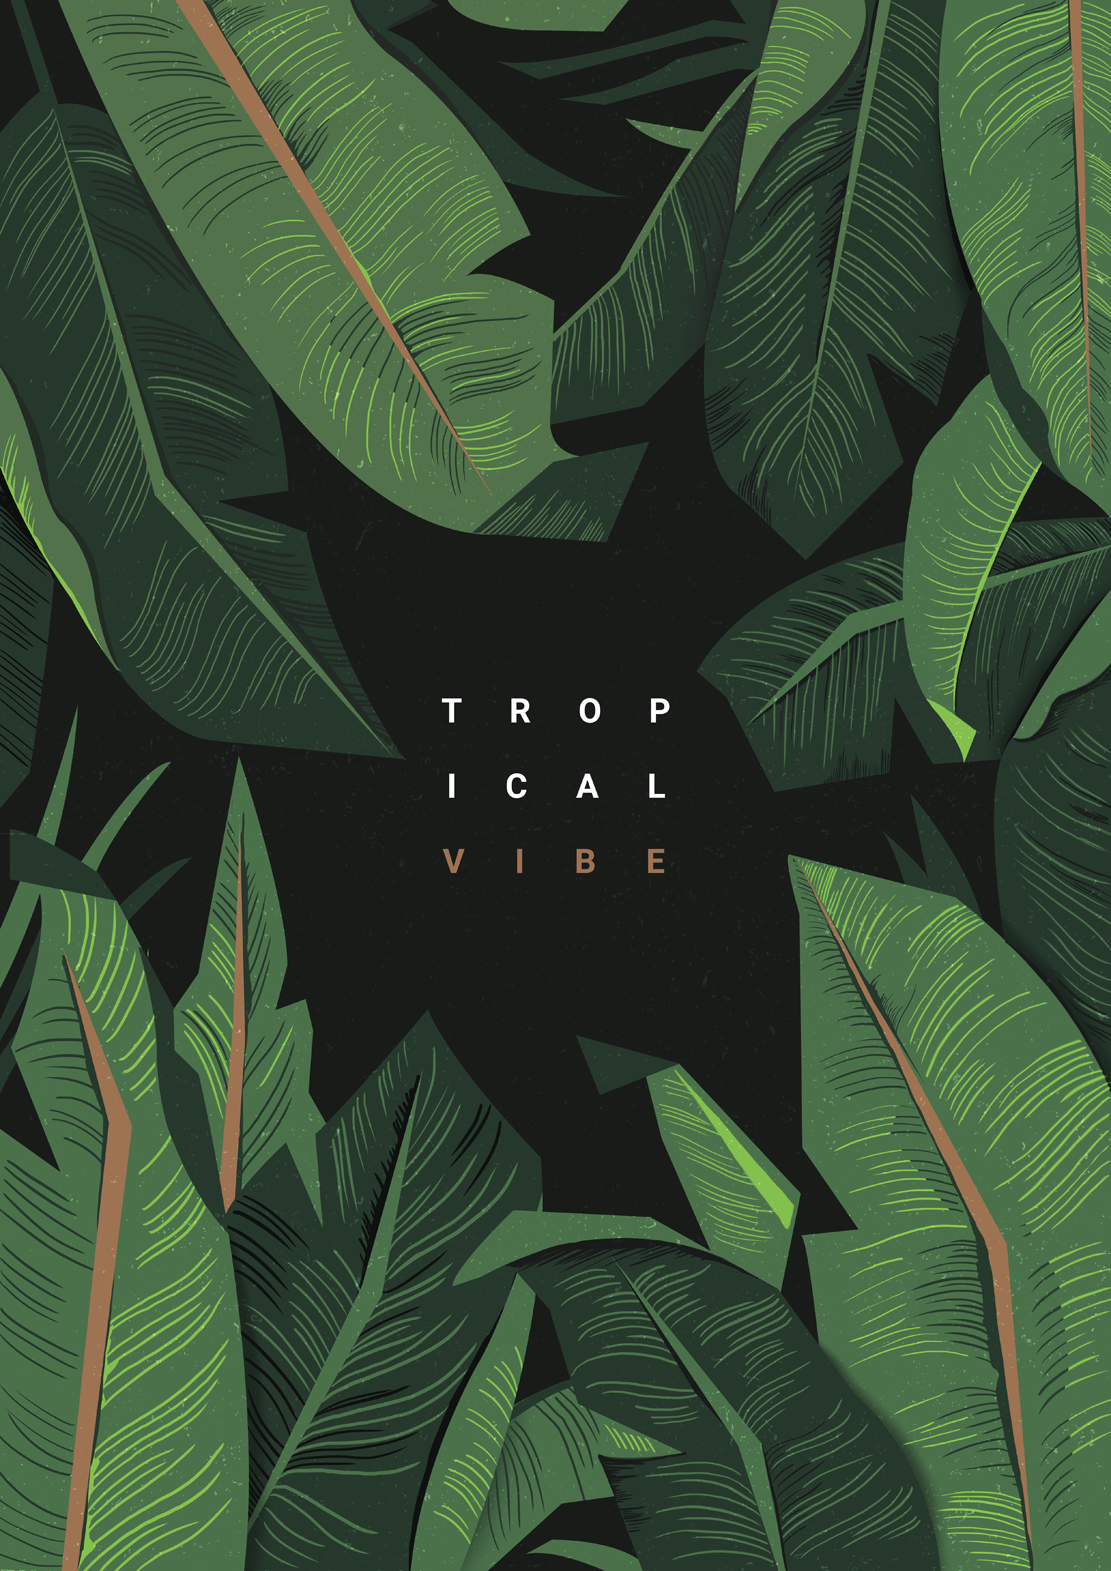 Tropical Vibe Poster Illustrated Posters In 2019 Tropical Vibes Tropical Tropical Wallpaper